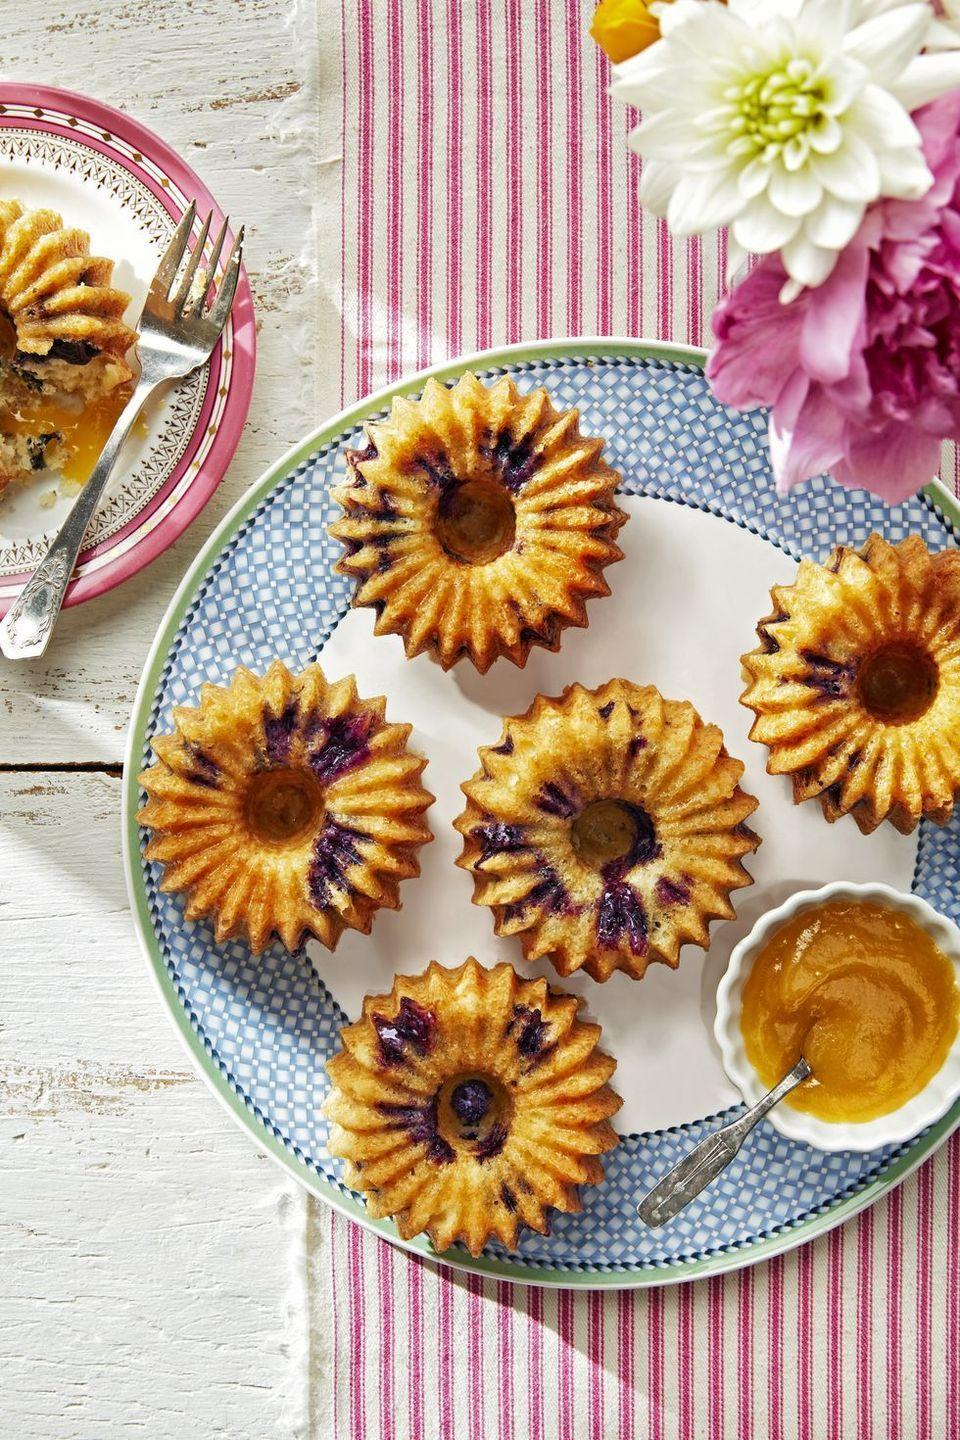 """<p>Tender cake brushed with a tangy lemon syrup – great for any celebration, big or small.<em><a href=""""https://www.countryliving.com/food-drinks/a27245094/meyer-lemon-blueberry-cake-recipe/"""" rel=""""nofollow noopener"""" target=""""_blank"""" data-ylk=""""slk:"""" class=""""link rapid-noclick-resp""""><br></a></em></p><p><em><a href=""""https://www.countryliving.com/food-drinks/a27245094/meyer-lemon-blueberry-cake-recipe/"""" rel=""""nofollow noopener"""" target=""""_blank"""" data-ylk=""""slk:Get the recipe from Country Living »"""" class=""""link rapid-noclick-resp"""">Get the recipe from Country Living »</a></em></p>"""